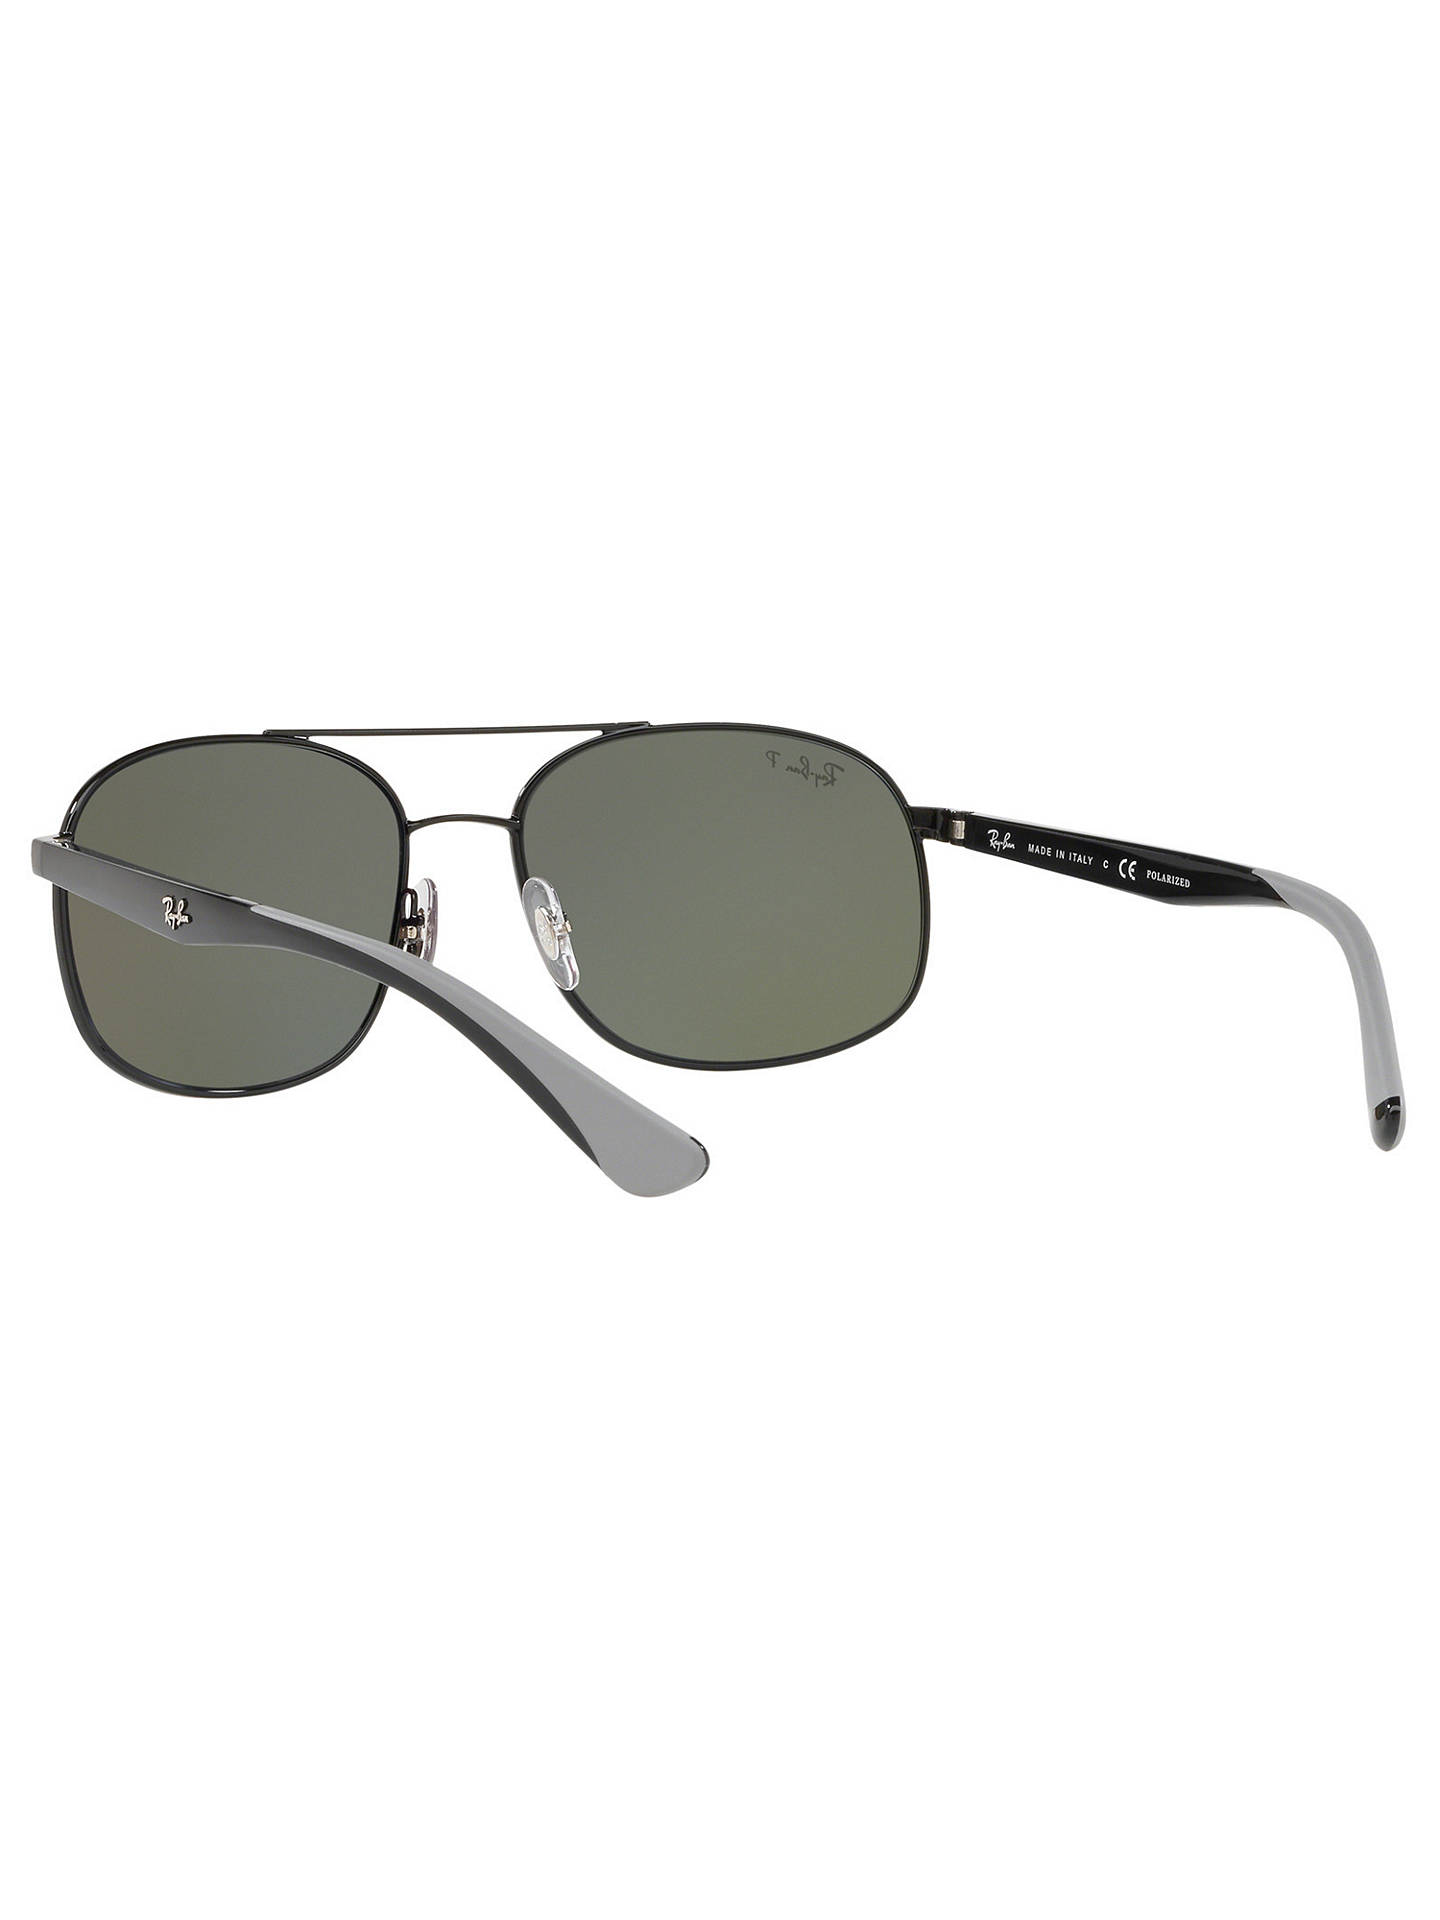 Buy Ray-Ban RB3593 Unisex Polarised Oval Sunglasses, Black/Grey Online at johnlewis.com